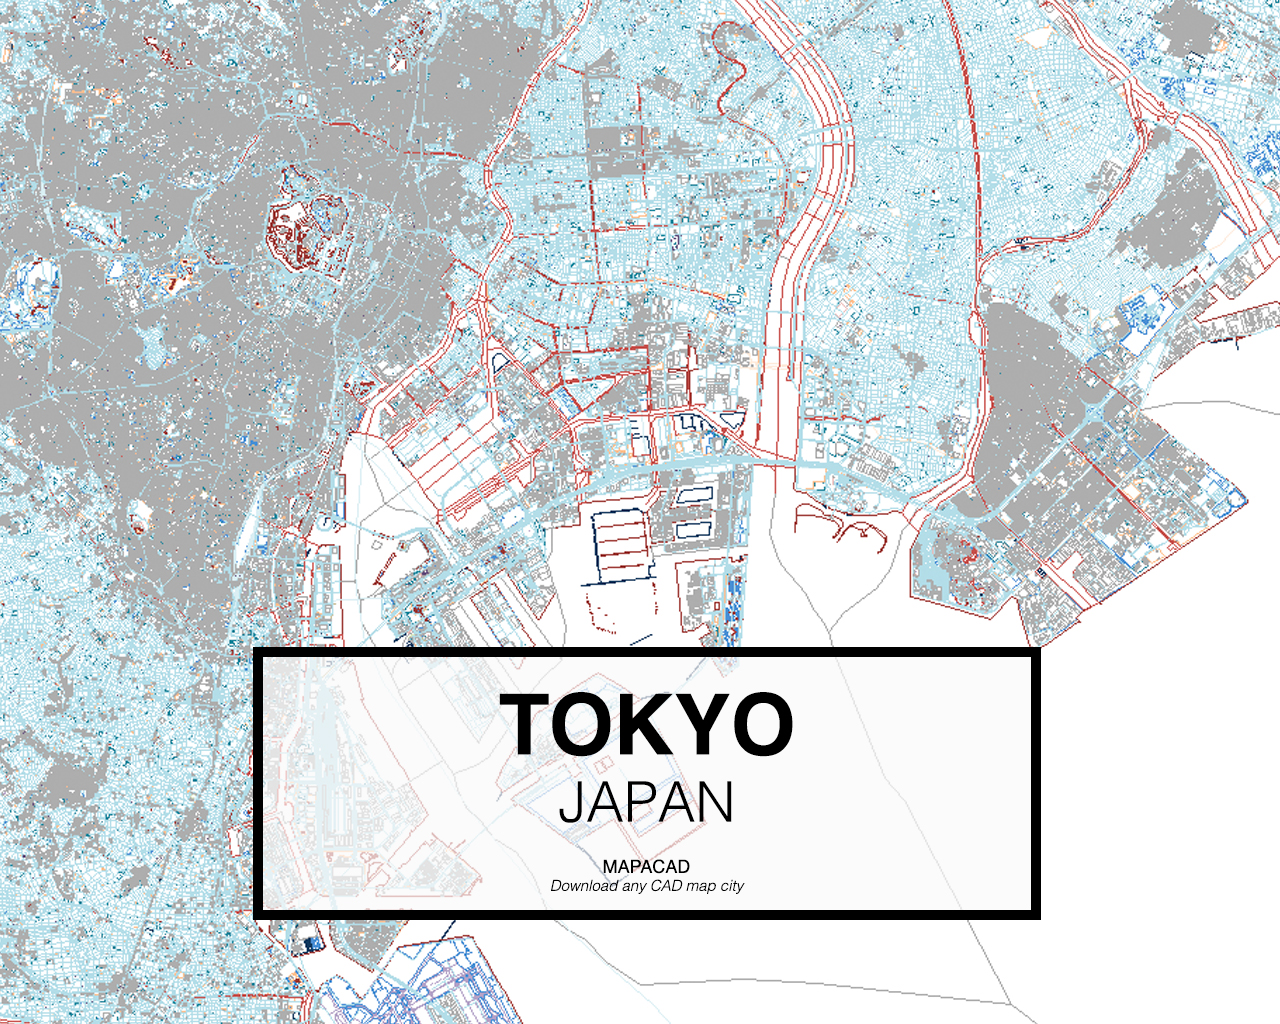 Download any cad map city mapacad tokyo japan 01 mapacad download map cad dwg gumiabroncs Choice Image